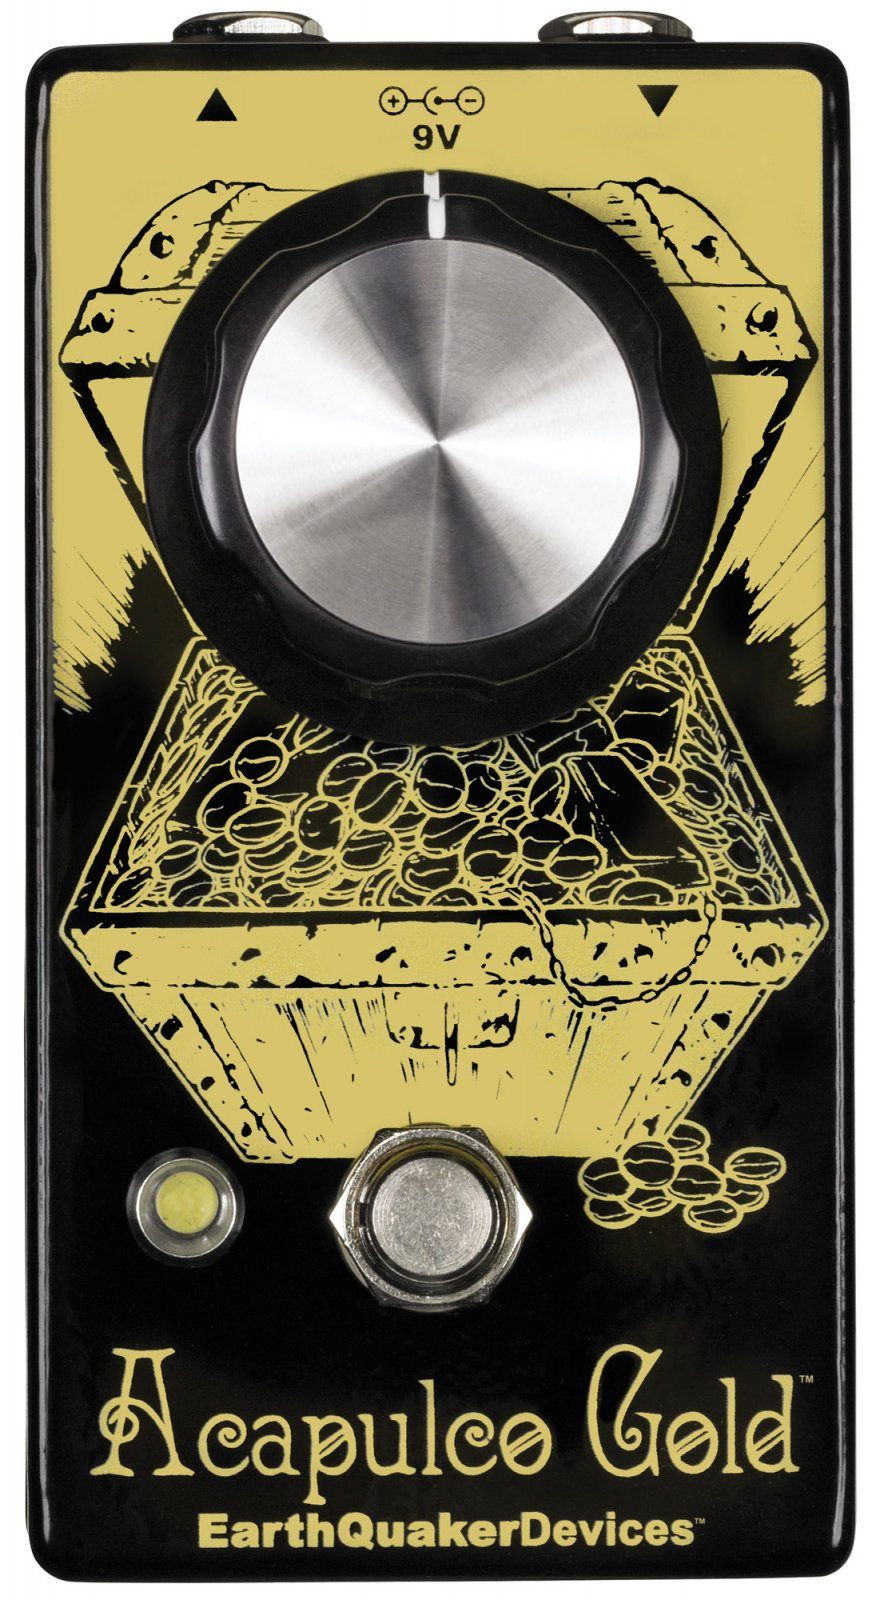 EarthQuaker Alcapulco Gold Power Amp Distortion